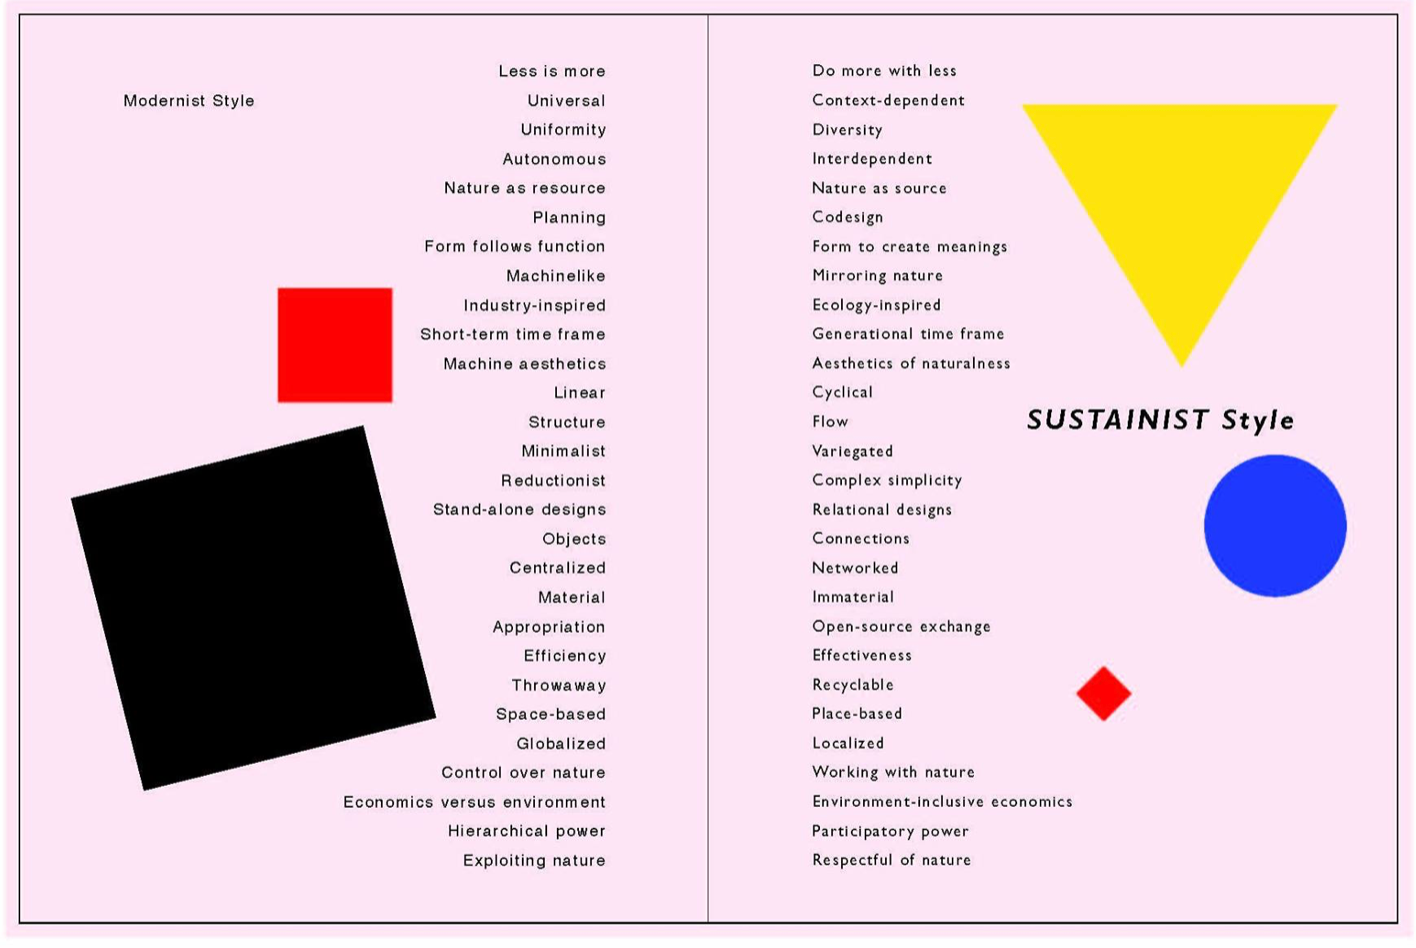 Sustainist Style and Modenist Style